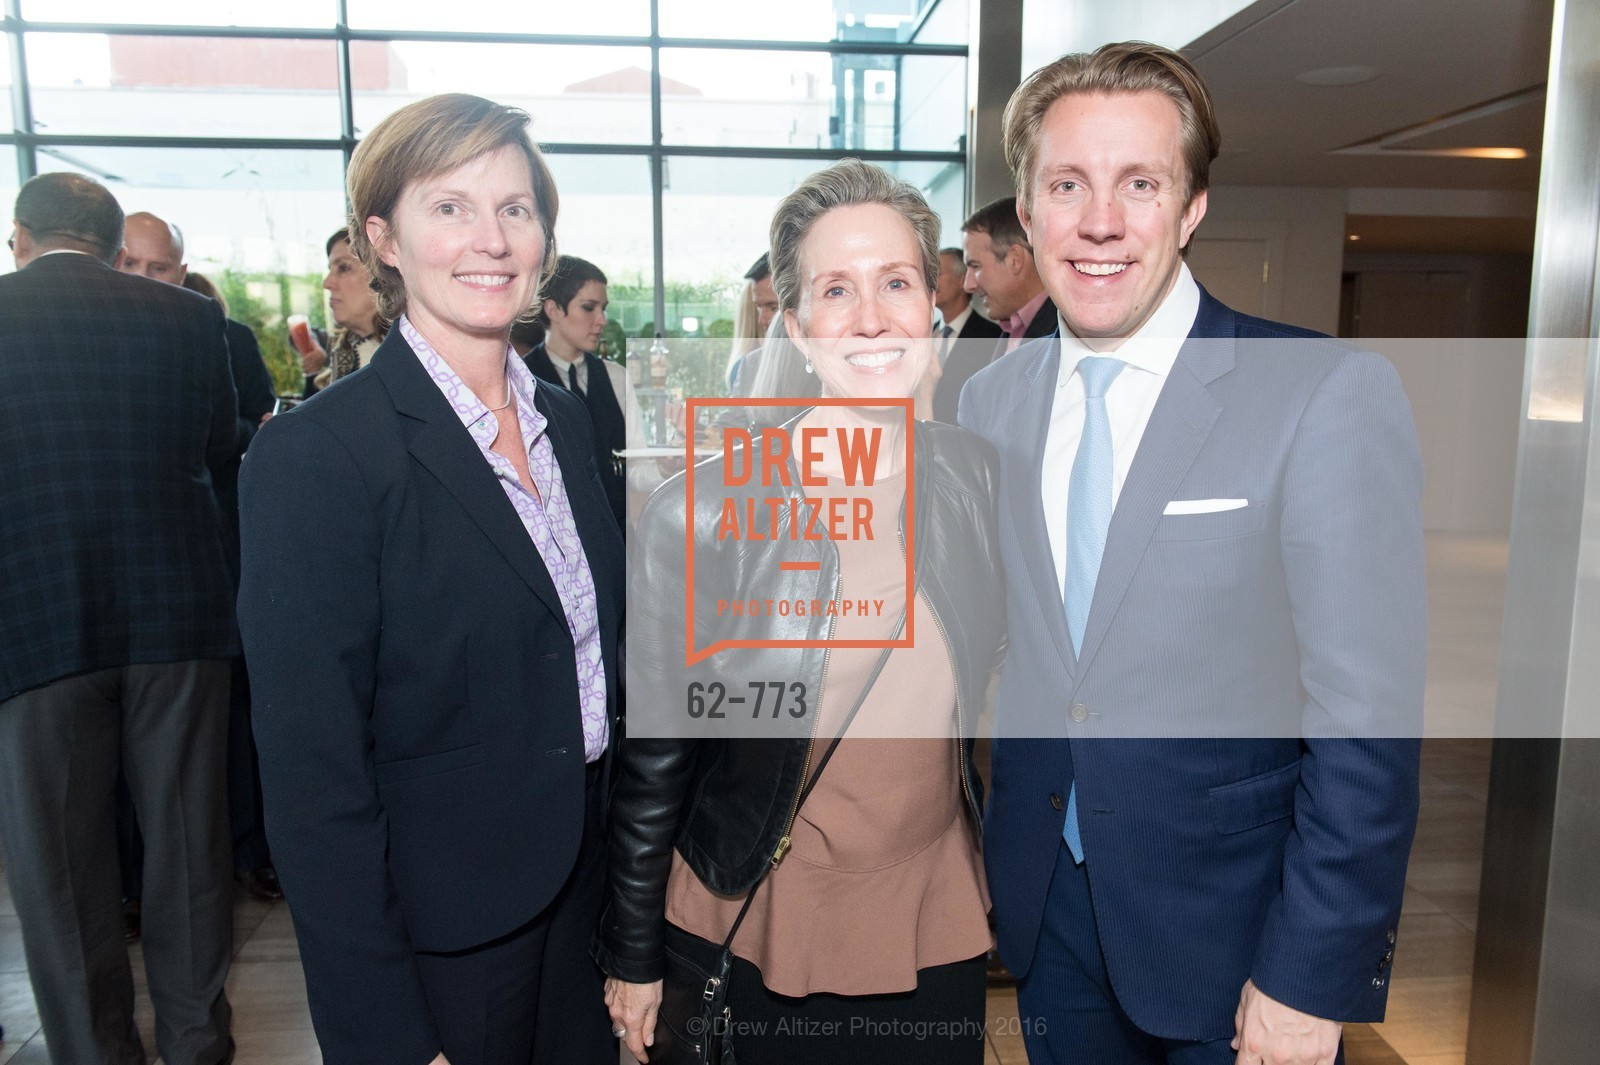 Sarah Schnepf, Rebecca Schumacher, Brad Nelson, Sotheby's International Realty's Celebrates the New Year, The Battery, Penthouse. 717 Battery St, January 27th, 2016,Drew Altizer, Drew Altizer Photography, full-service agency, private events, San Francisco photographer, photographer california